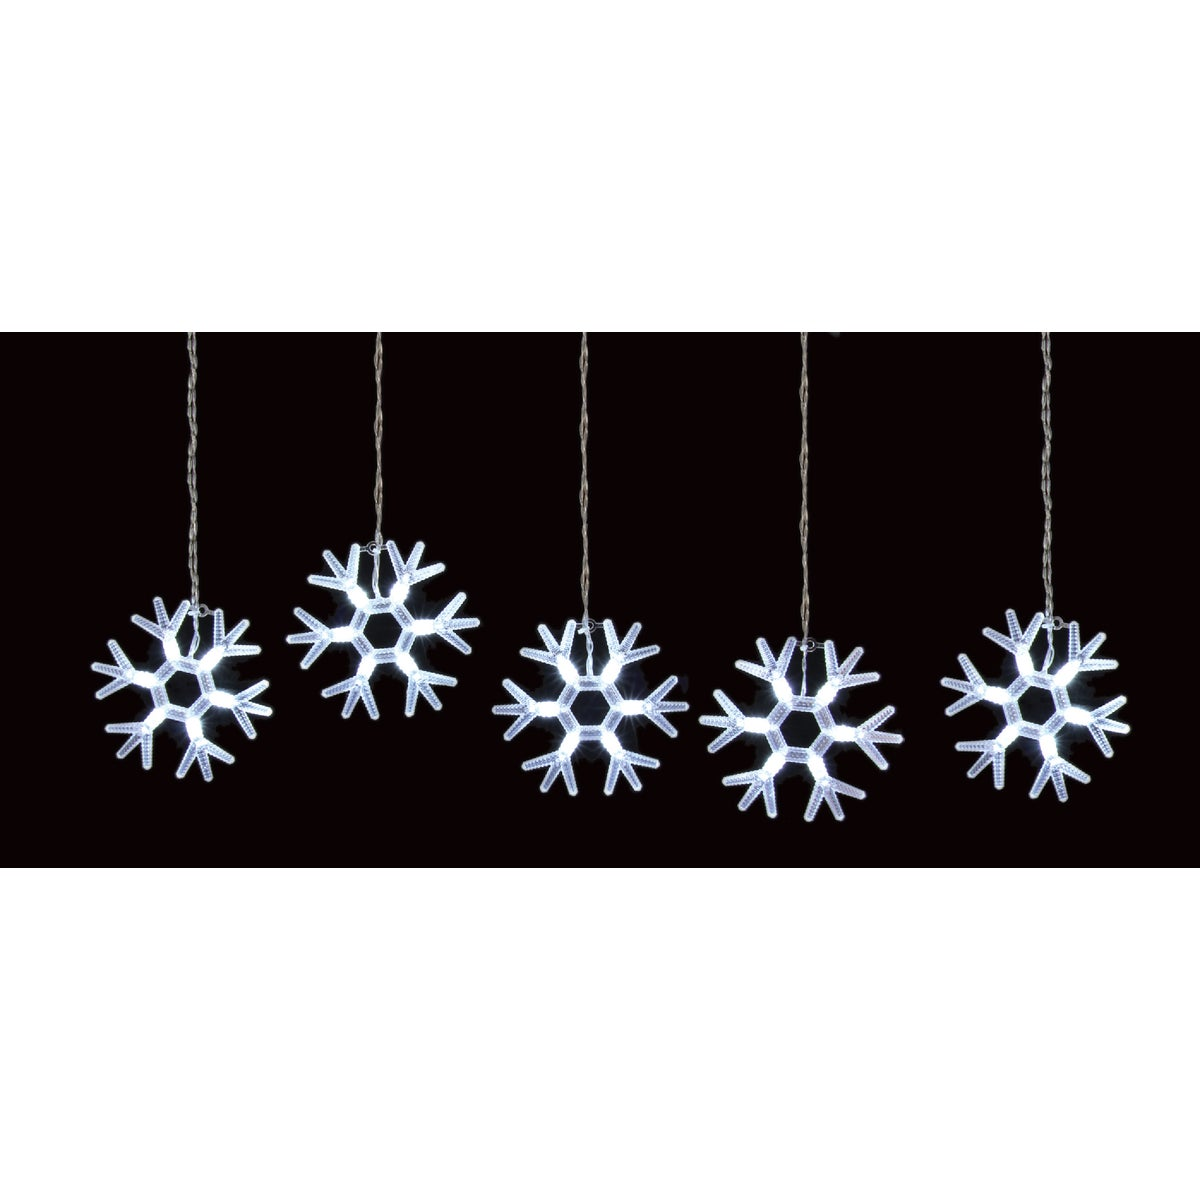 B/O SNOWFLAKES SET/3 - 48-551-67 by Brite Star